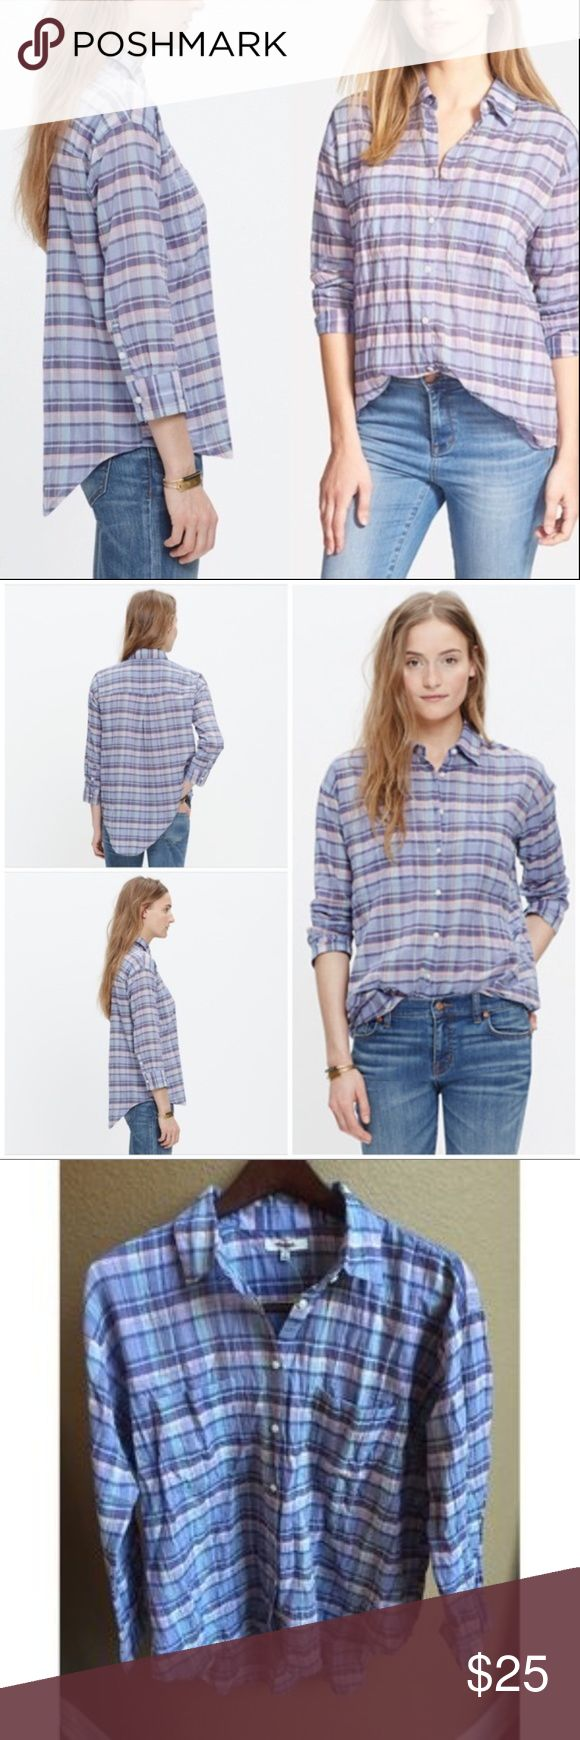 "Shrunken Trapeze Plaid Shirt By Madewell M NWT Madewell Shrunken Trapeze Shirt in Oakbrook Plaid in size Medium. A favorite over-sized button-down shirt gets a lean makeover complete with three-quarter sleeves. Undeniably cool in a crinkled plaid that's made for tossing in a suitcase. True to size.Cotton/spandex.   Length of front from shoulder to  hem is 26"". Length of back is 29"".Purchased on Final Sale from Madewell Store and has red line through tag on neck. Item from a pet and smoke…"